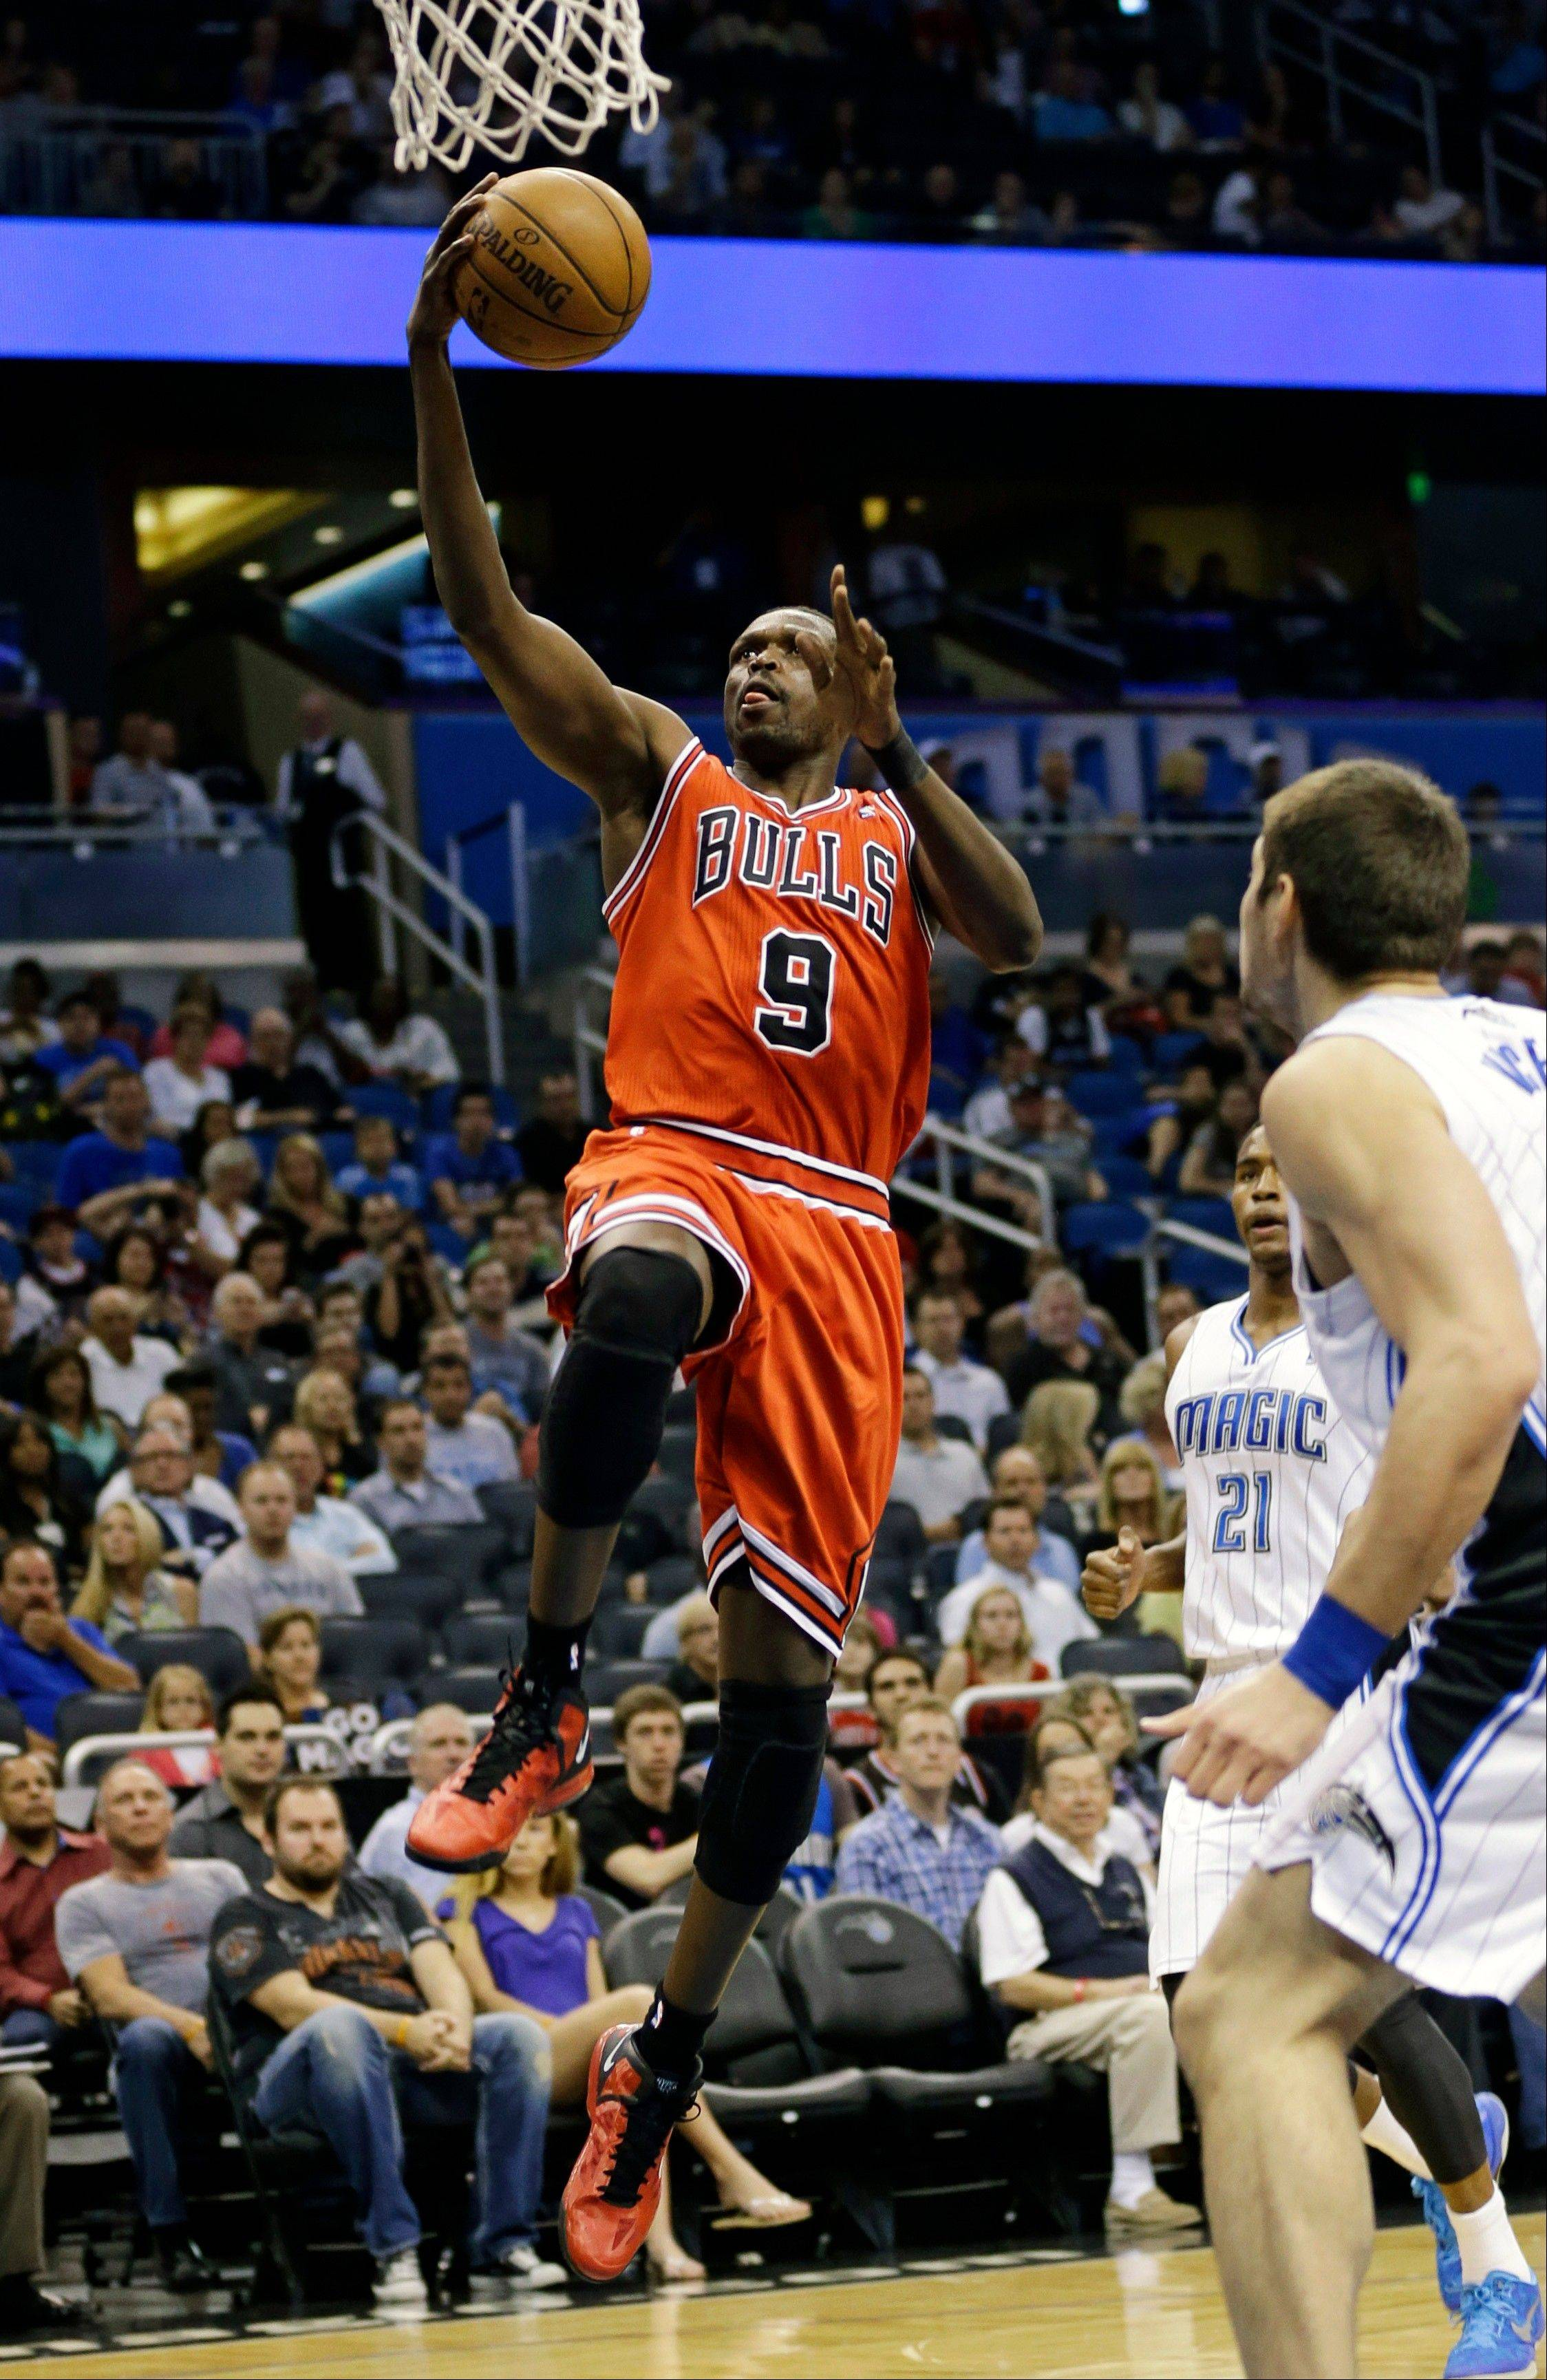 Chicago Bulls' Luol Deng (9) drives to the basket past Orlando Magic's Maurice Harkless (21) and Nikola Vucevic, right, of Montenegro, on Monday night in Orlando, Fla.